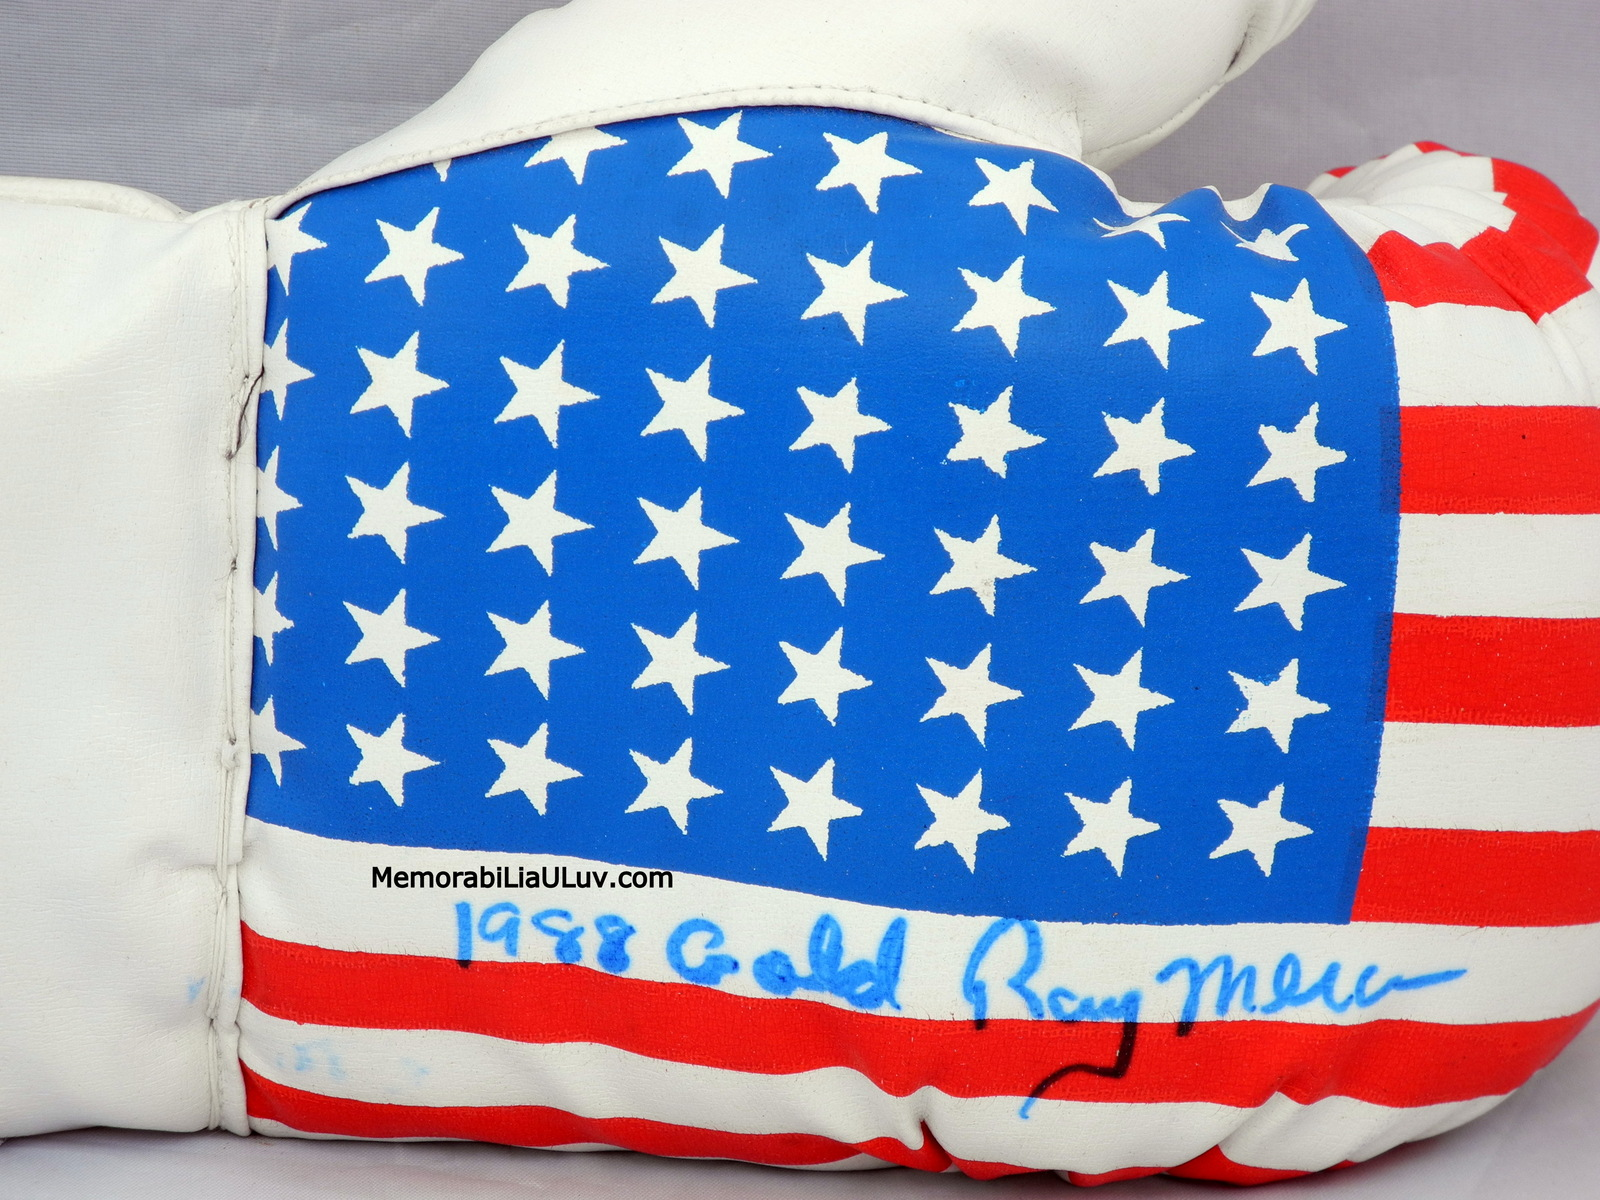 Ray Mercer Merciless Signed Autographed Team USA Boxing Glove image 3